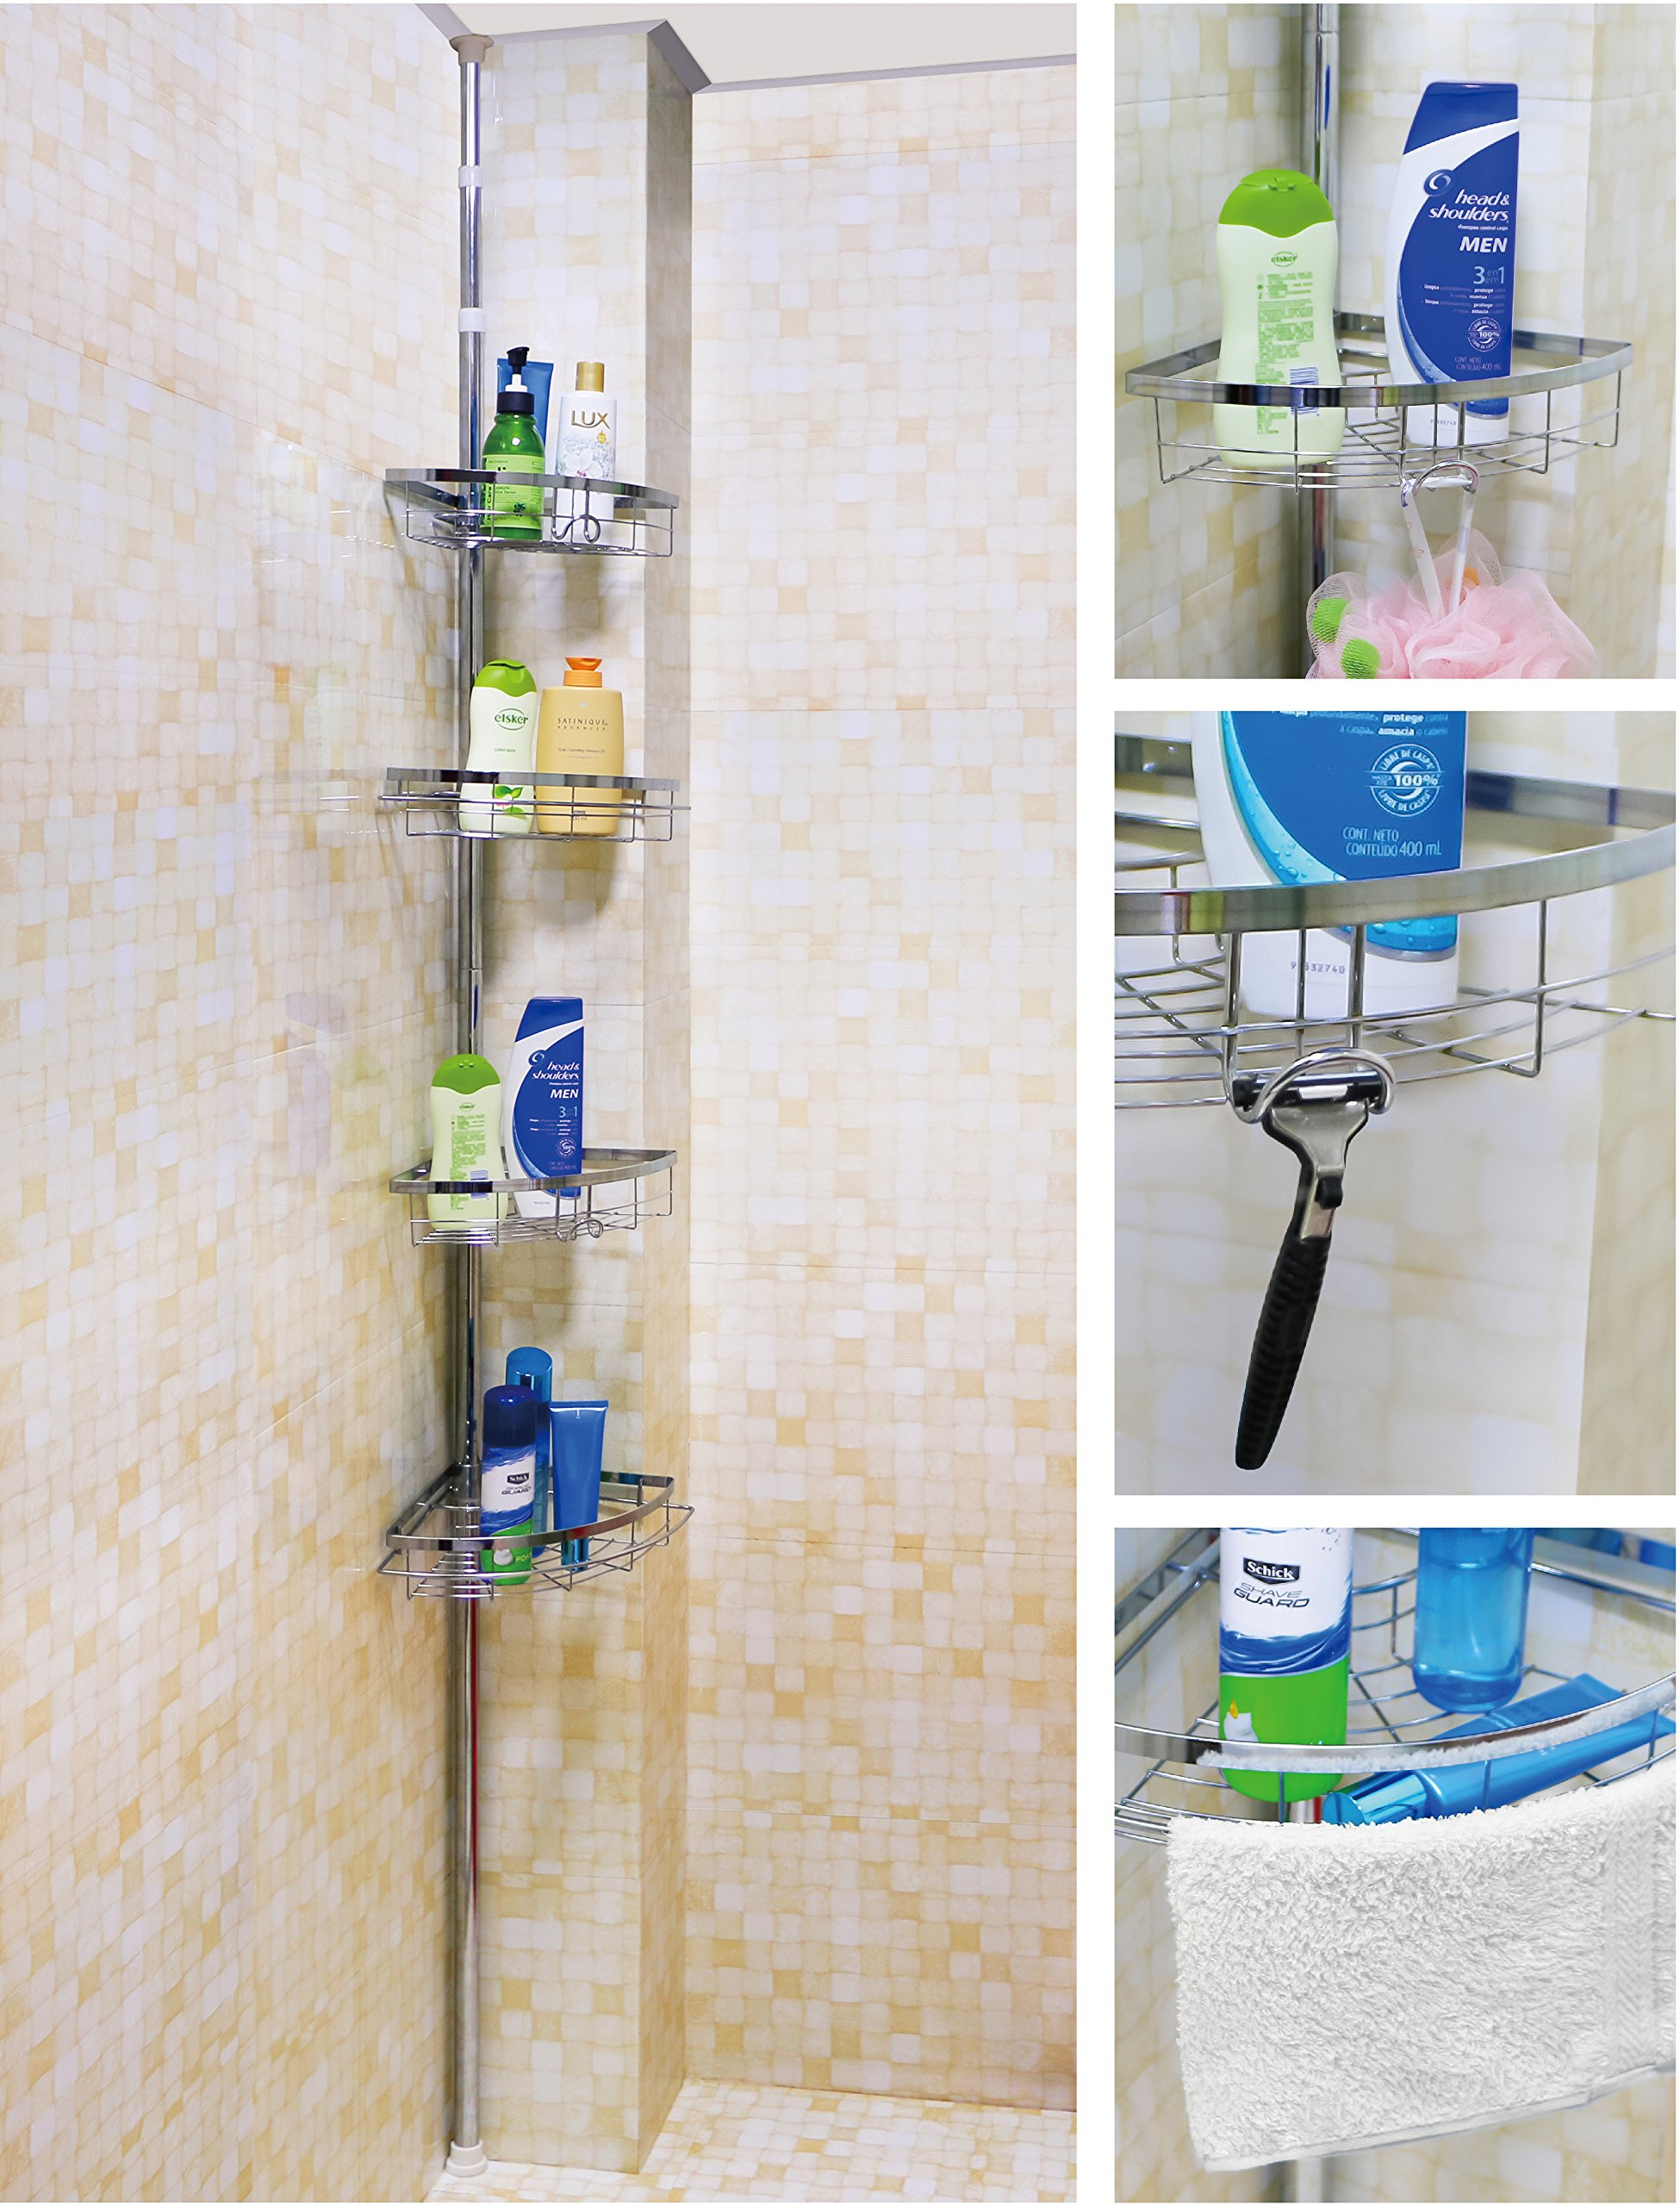 Get Quotations · Leapair Tension Shower Caddy 4 Tier Adjustable Bathroom  Constant Tension Corner Pole Caddy For Shampoo,